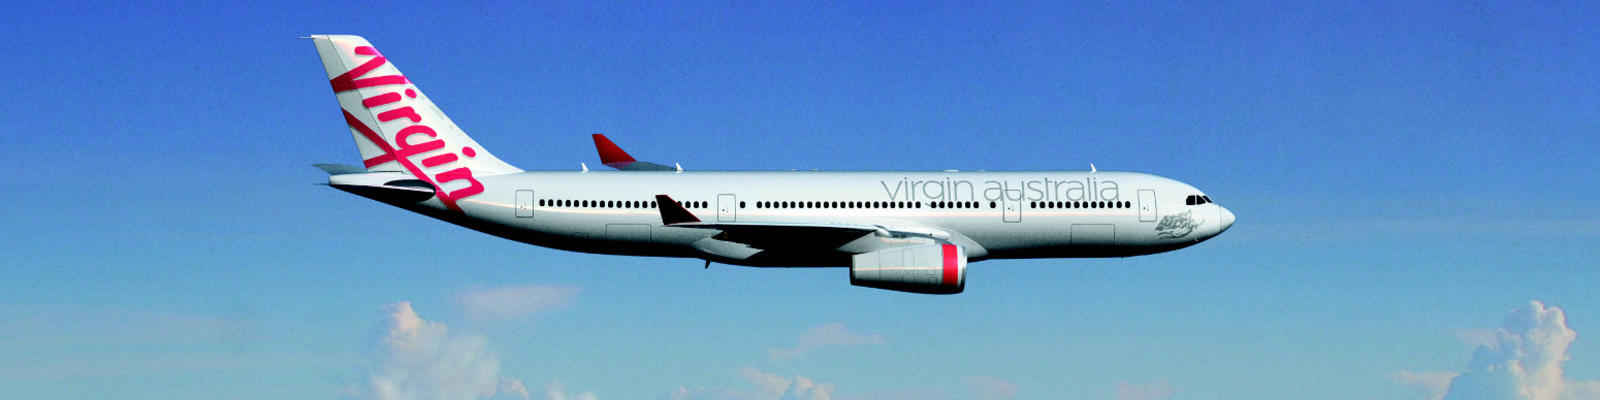 Virgin Australia airplane flying through blue skies with fluffy clouds in the background